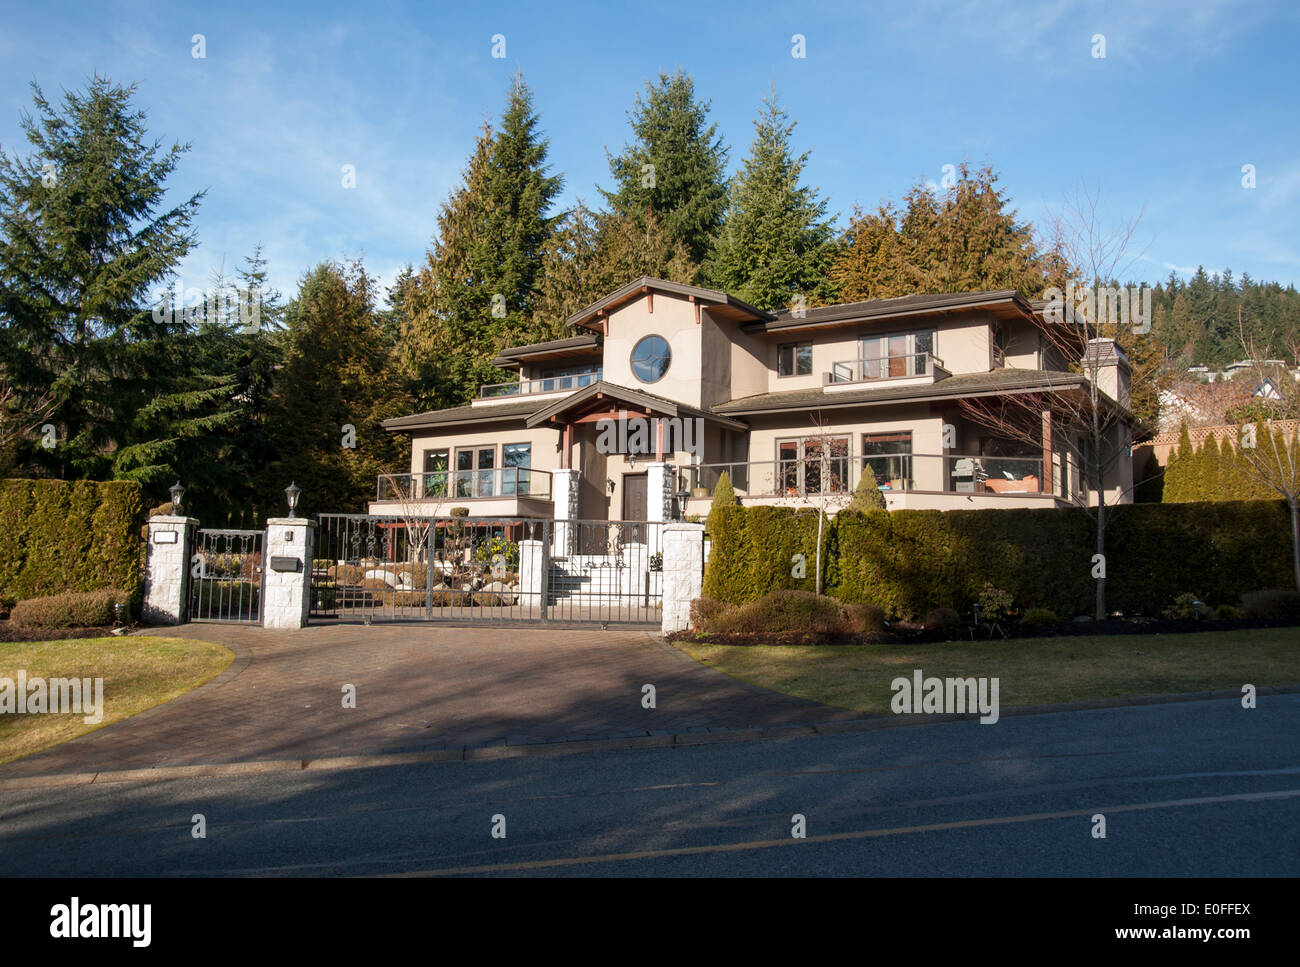 Large gated home in British Properties, West Vancouver, British Columbia, Canada - Stock Image